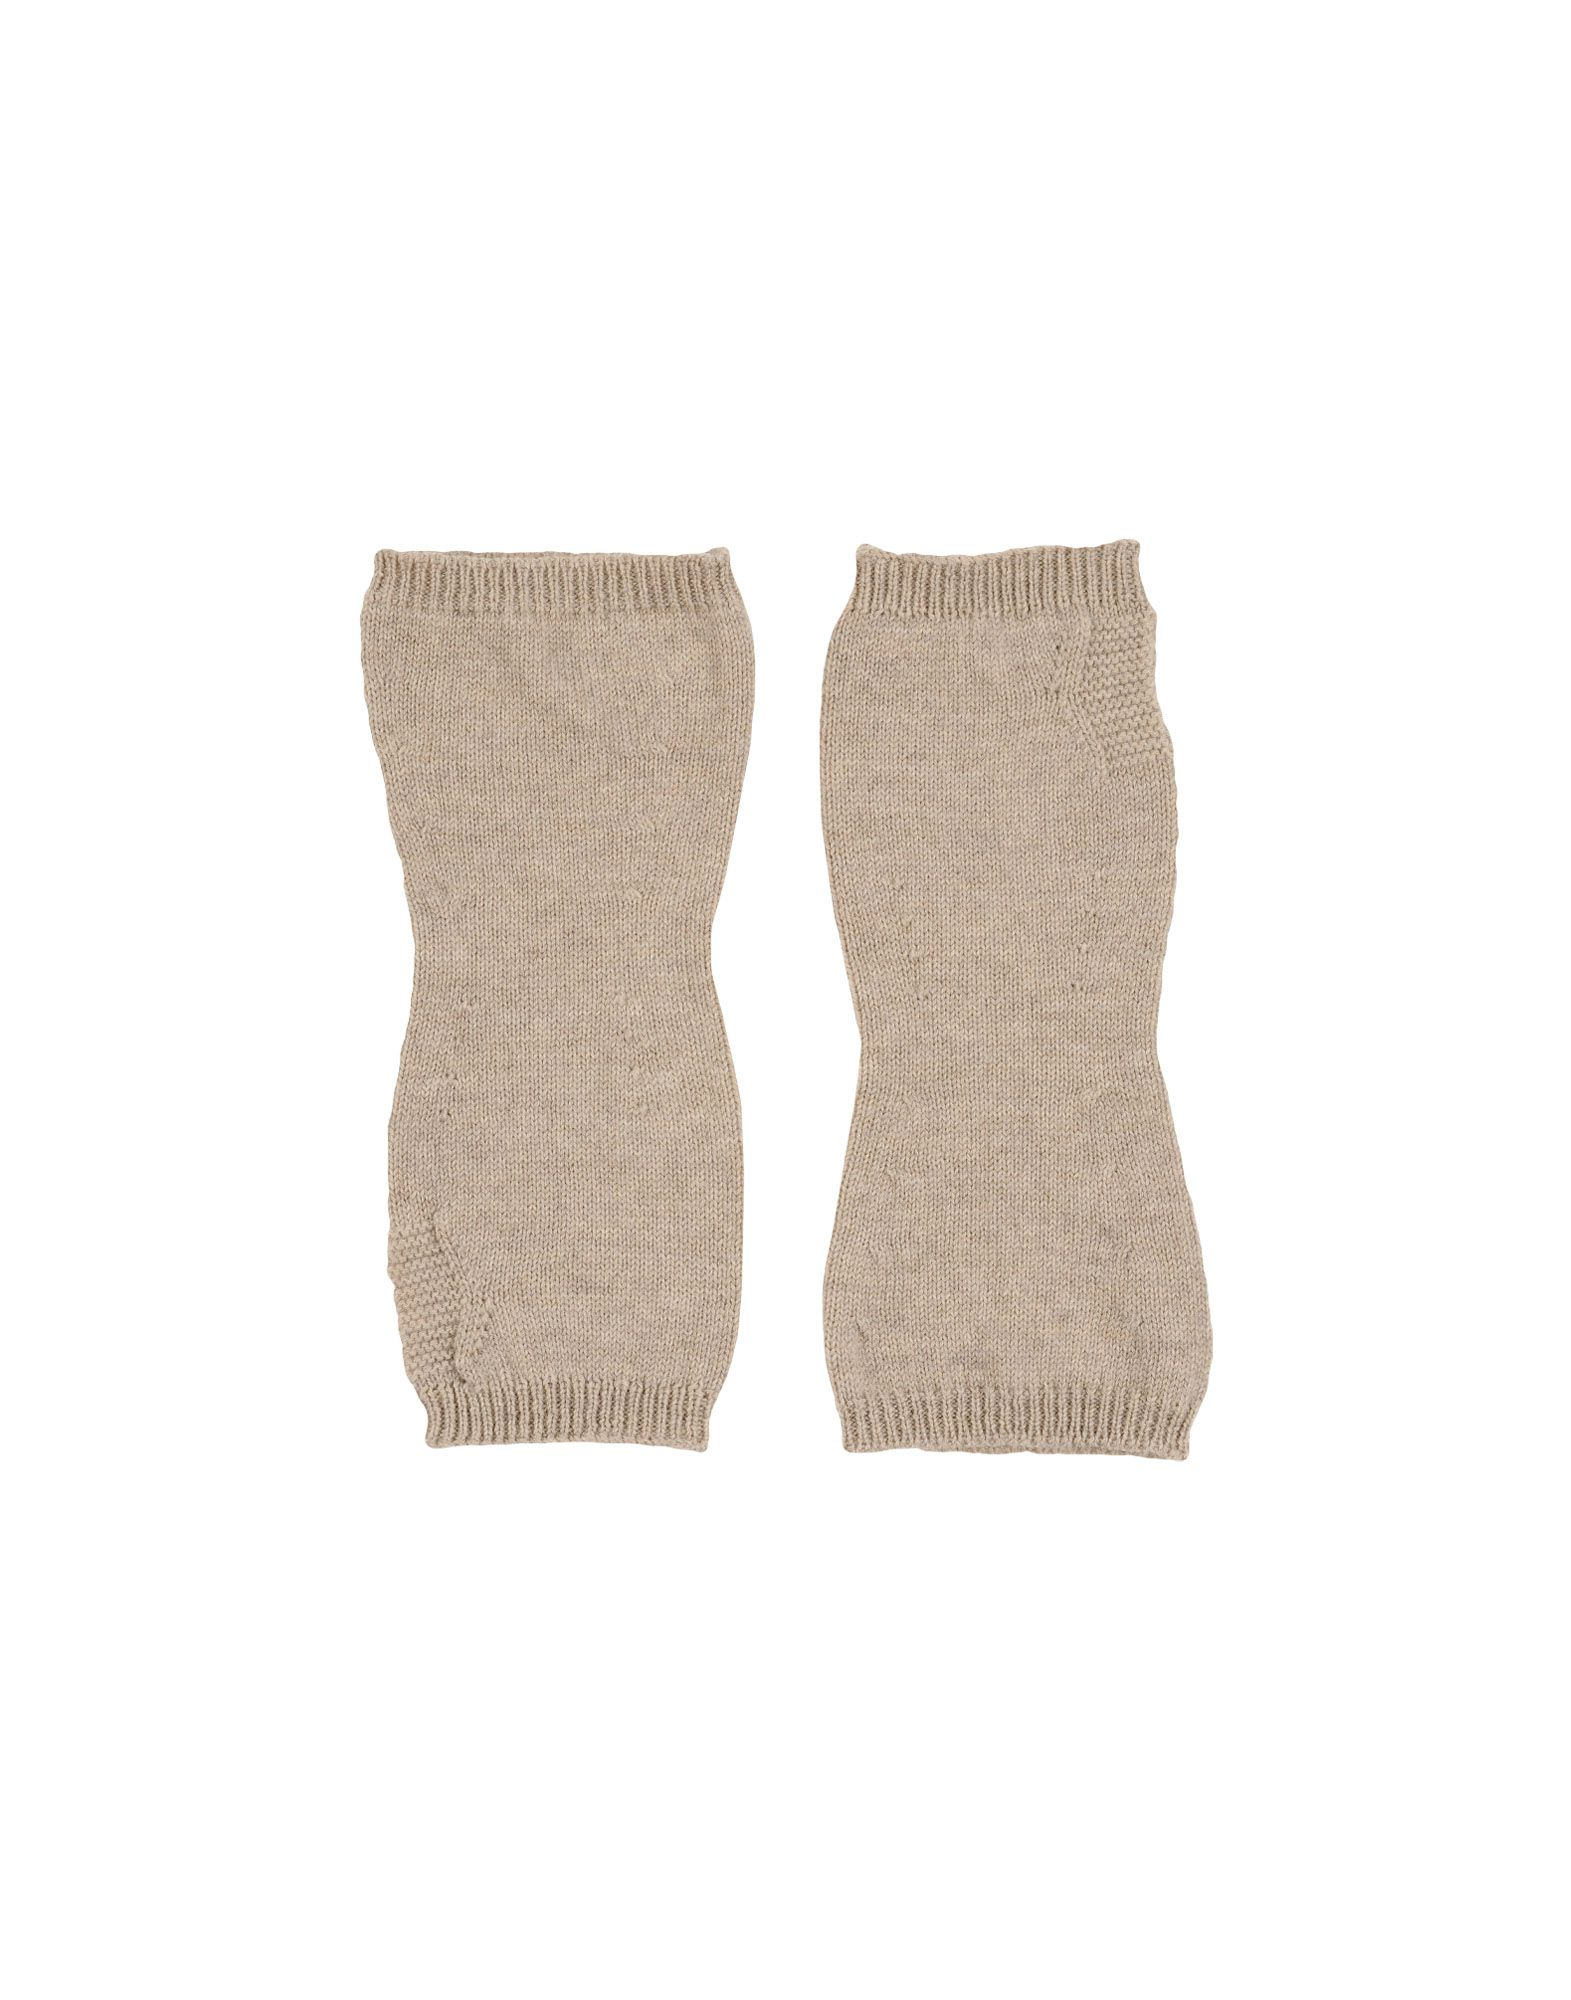 PIETER Gloves in Light Grey